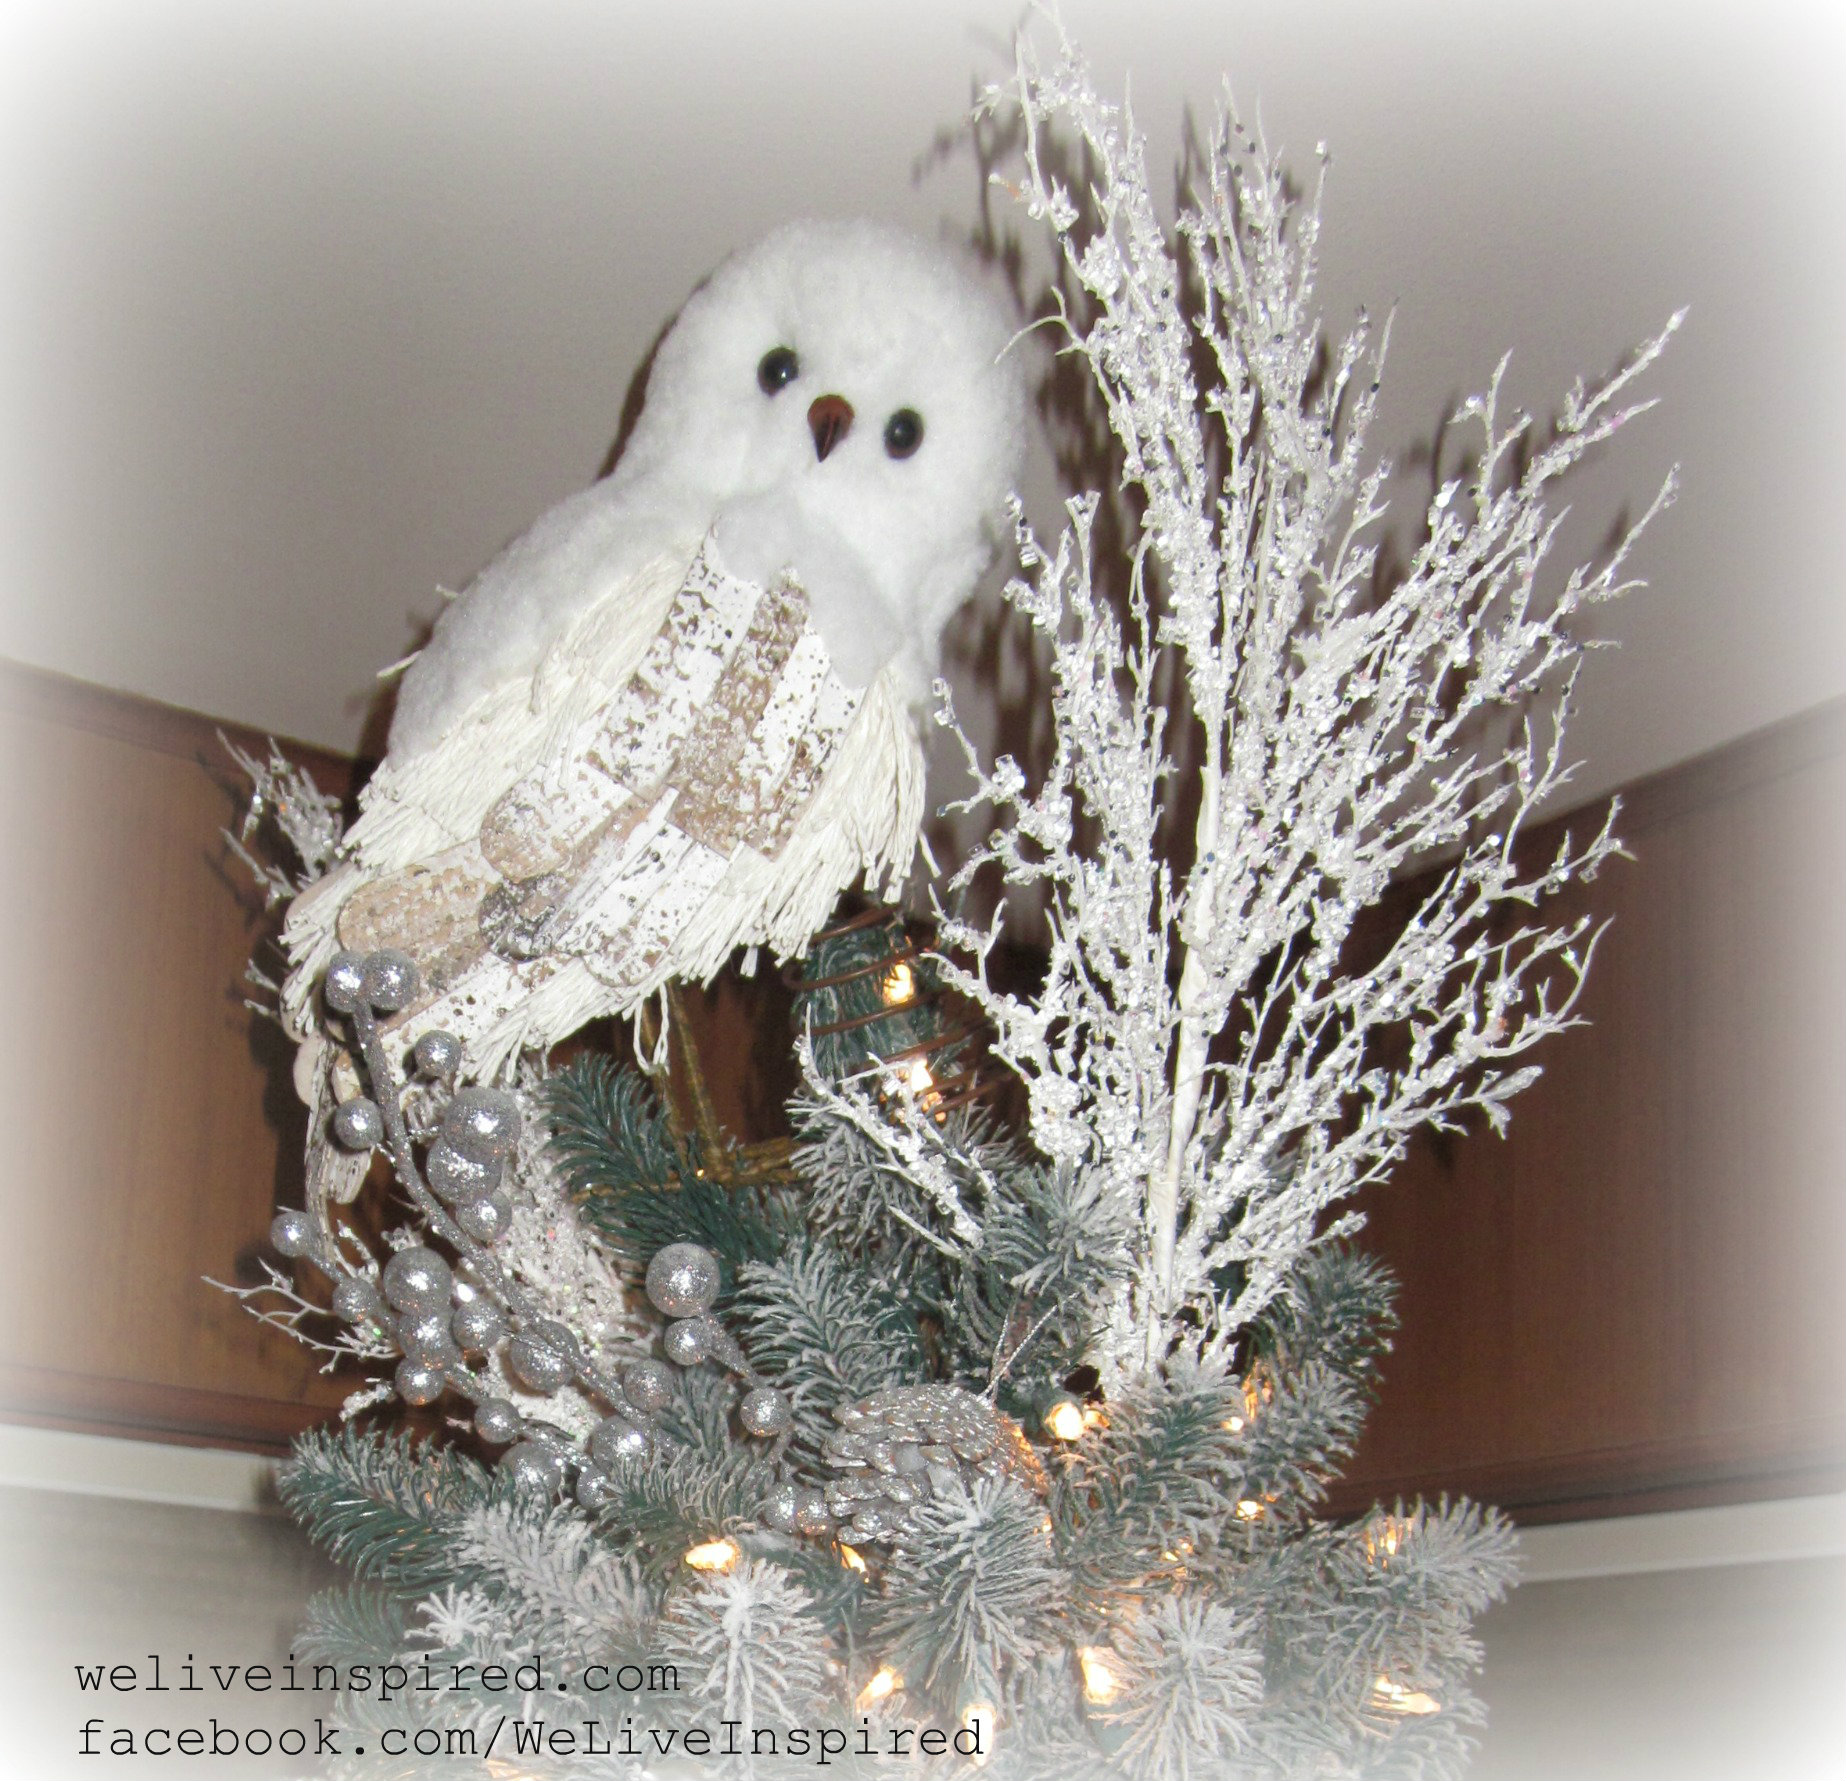 Sophisticated Christmas Tree: Classy Christmas Decor-My Snowy Owl Tree Topper